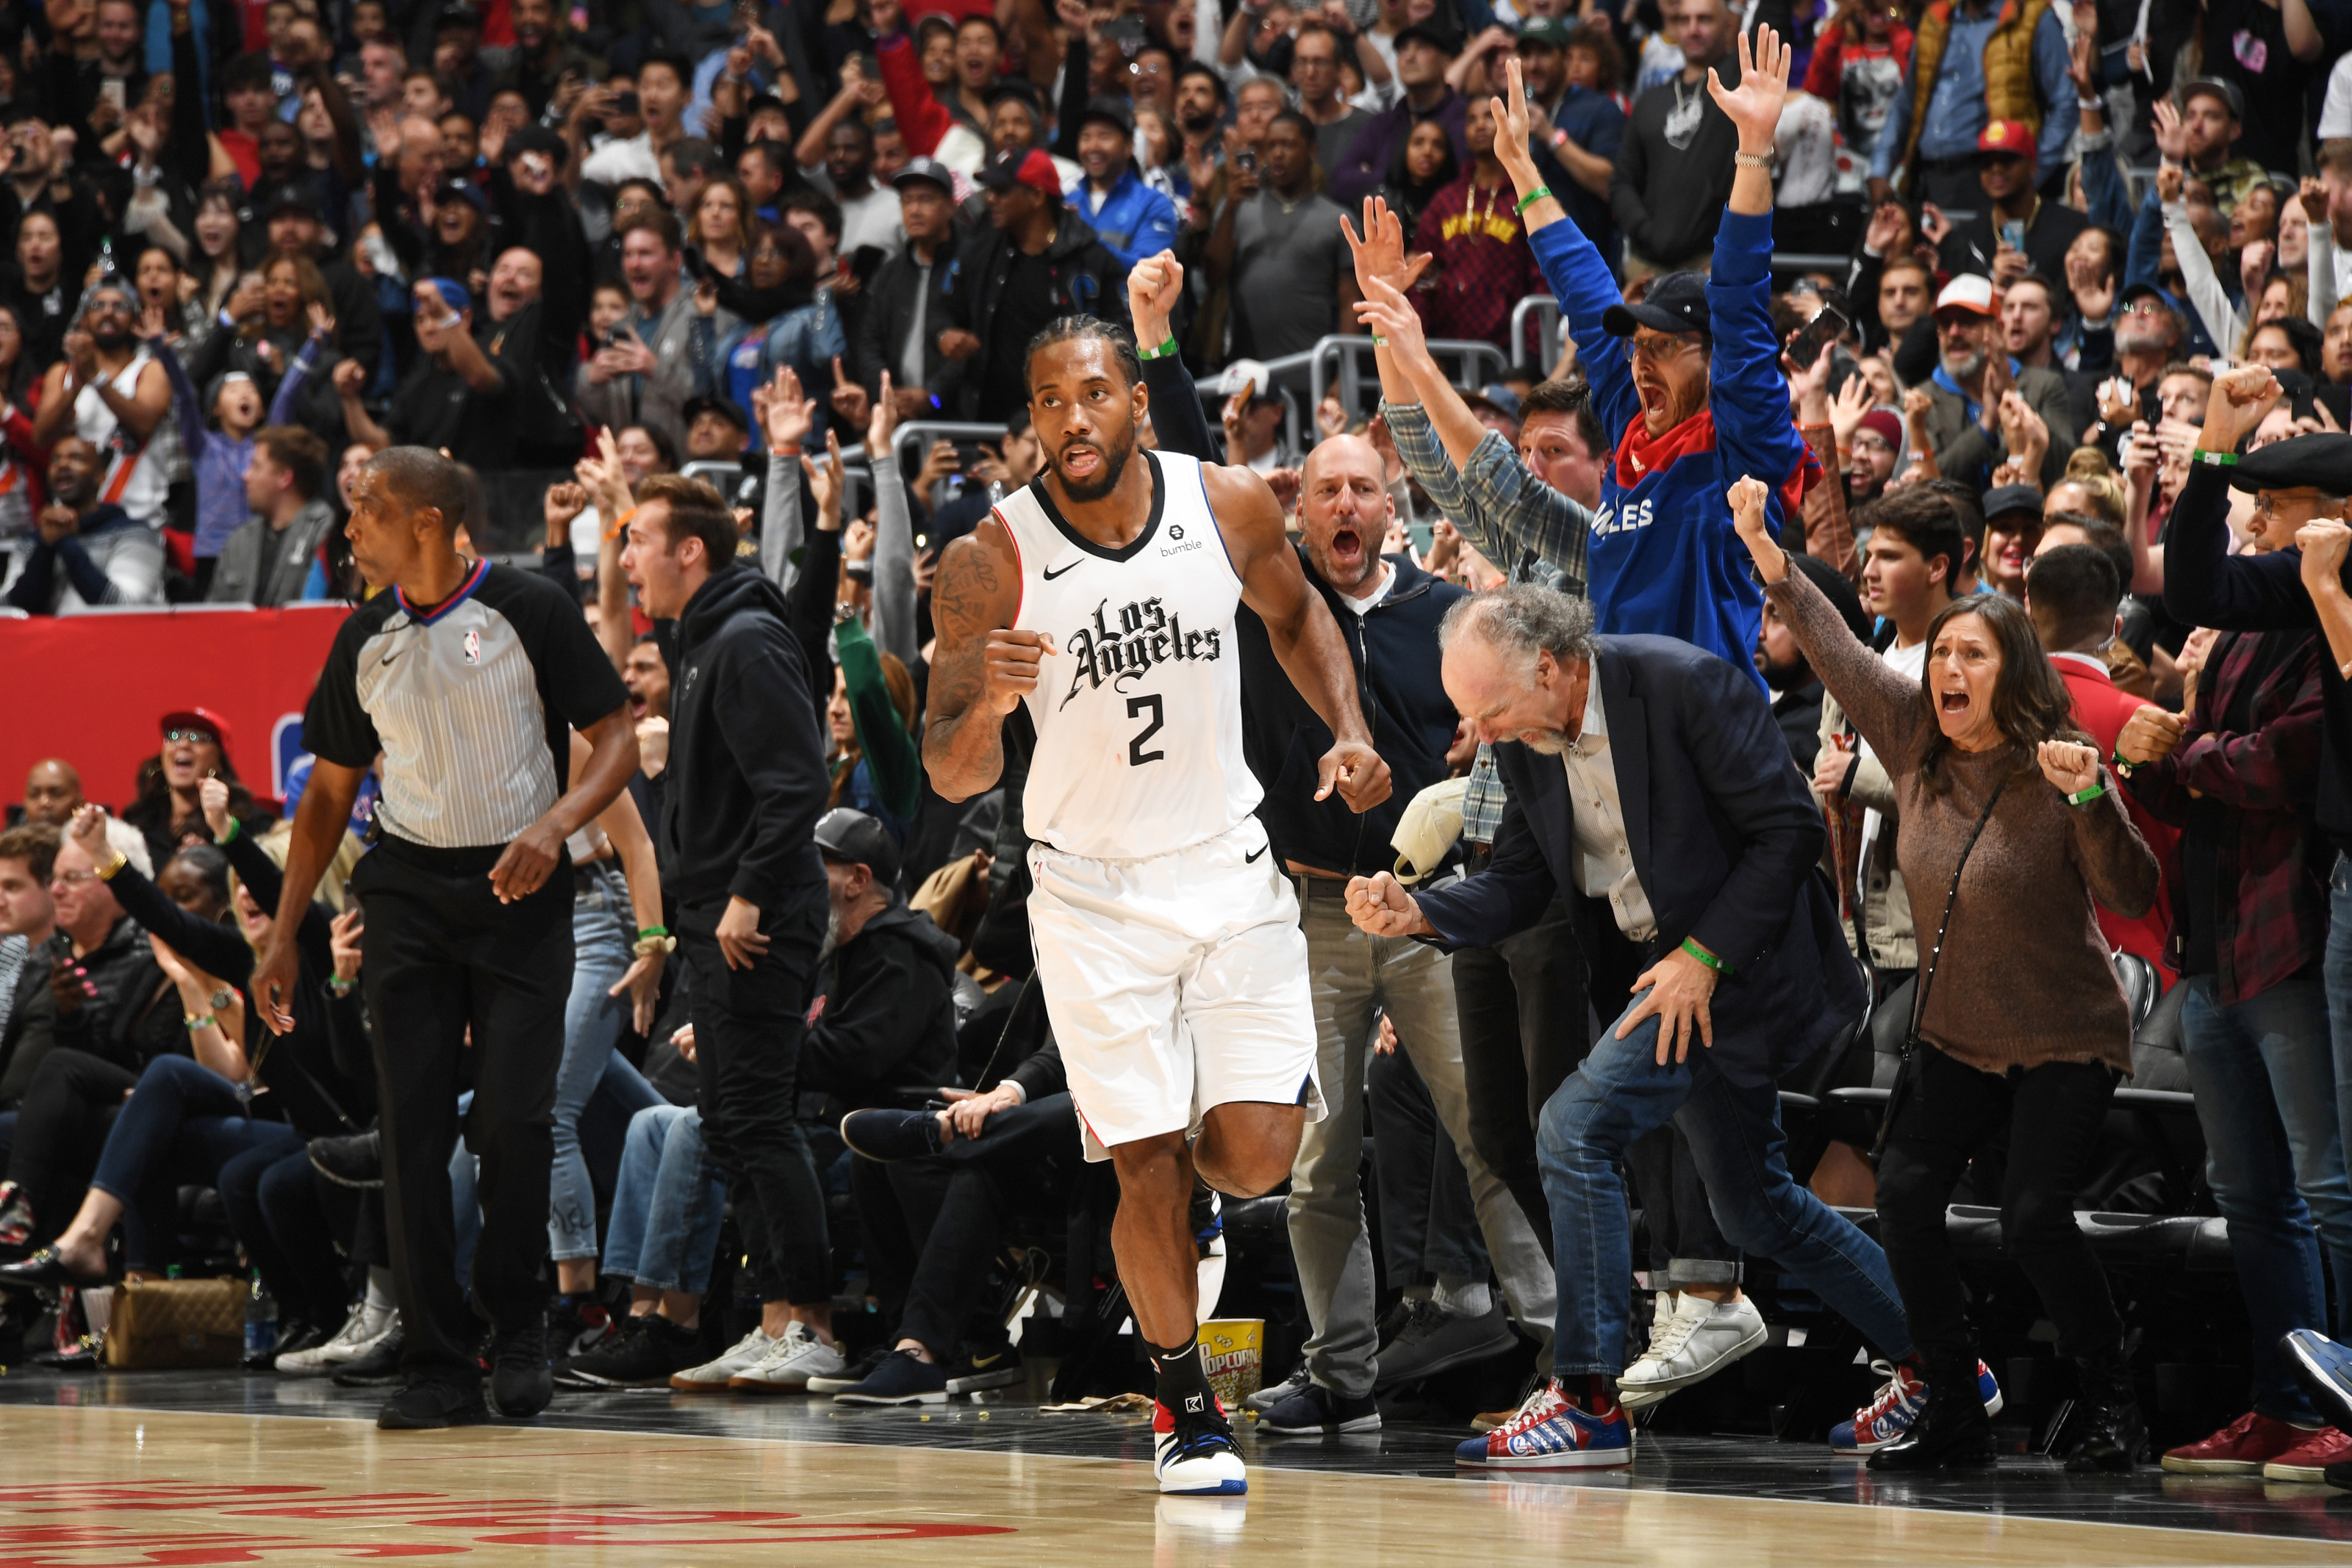 Three takeaways from the LA Clippers' comeback win over Rockets